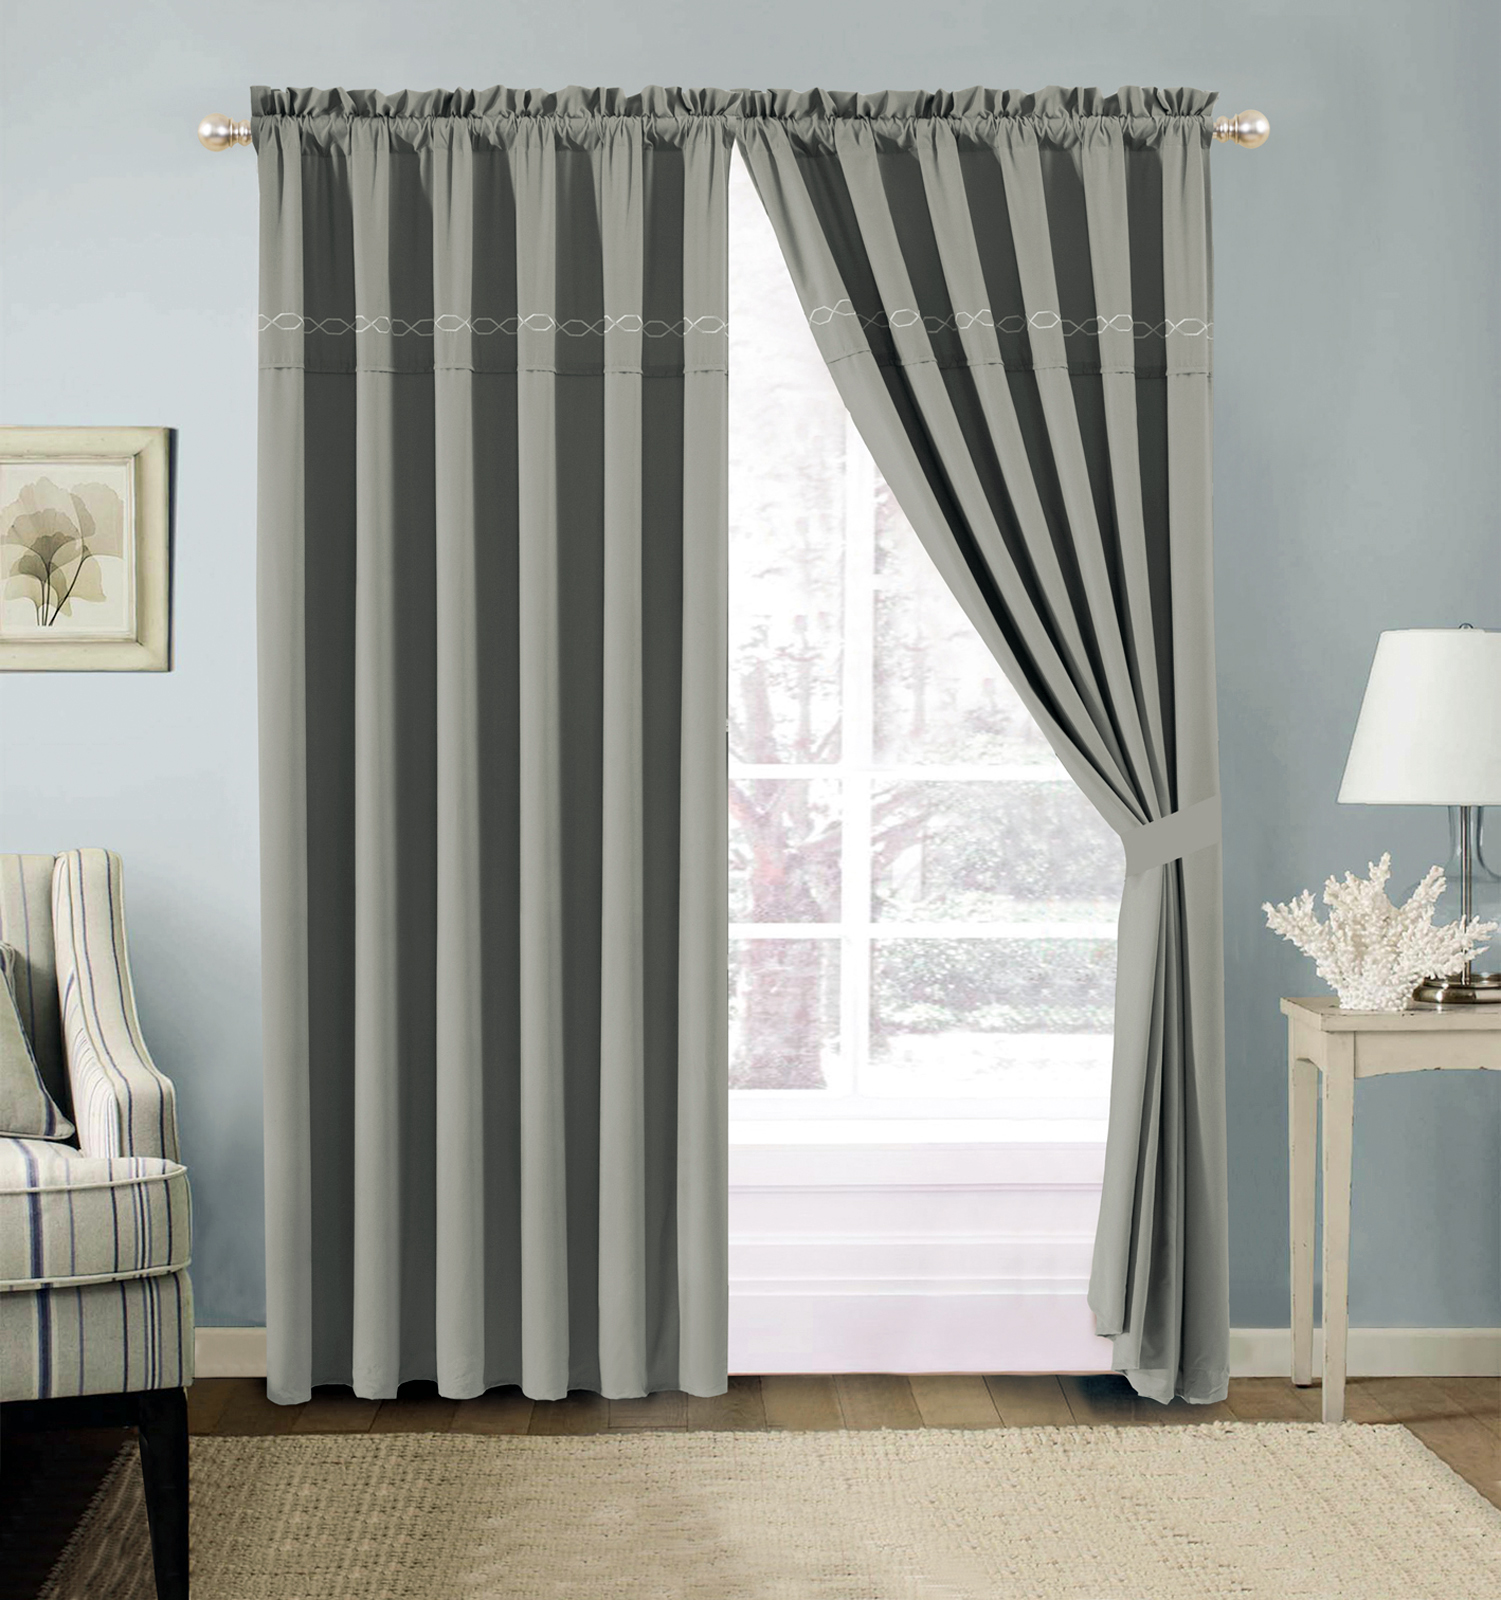 4-Pc Hoku Modern Hexagonal Embroidery Curtain Set Solid